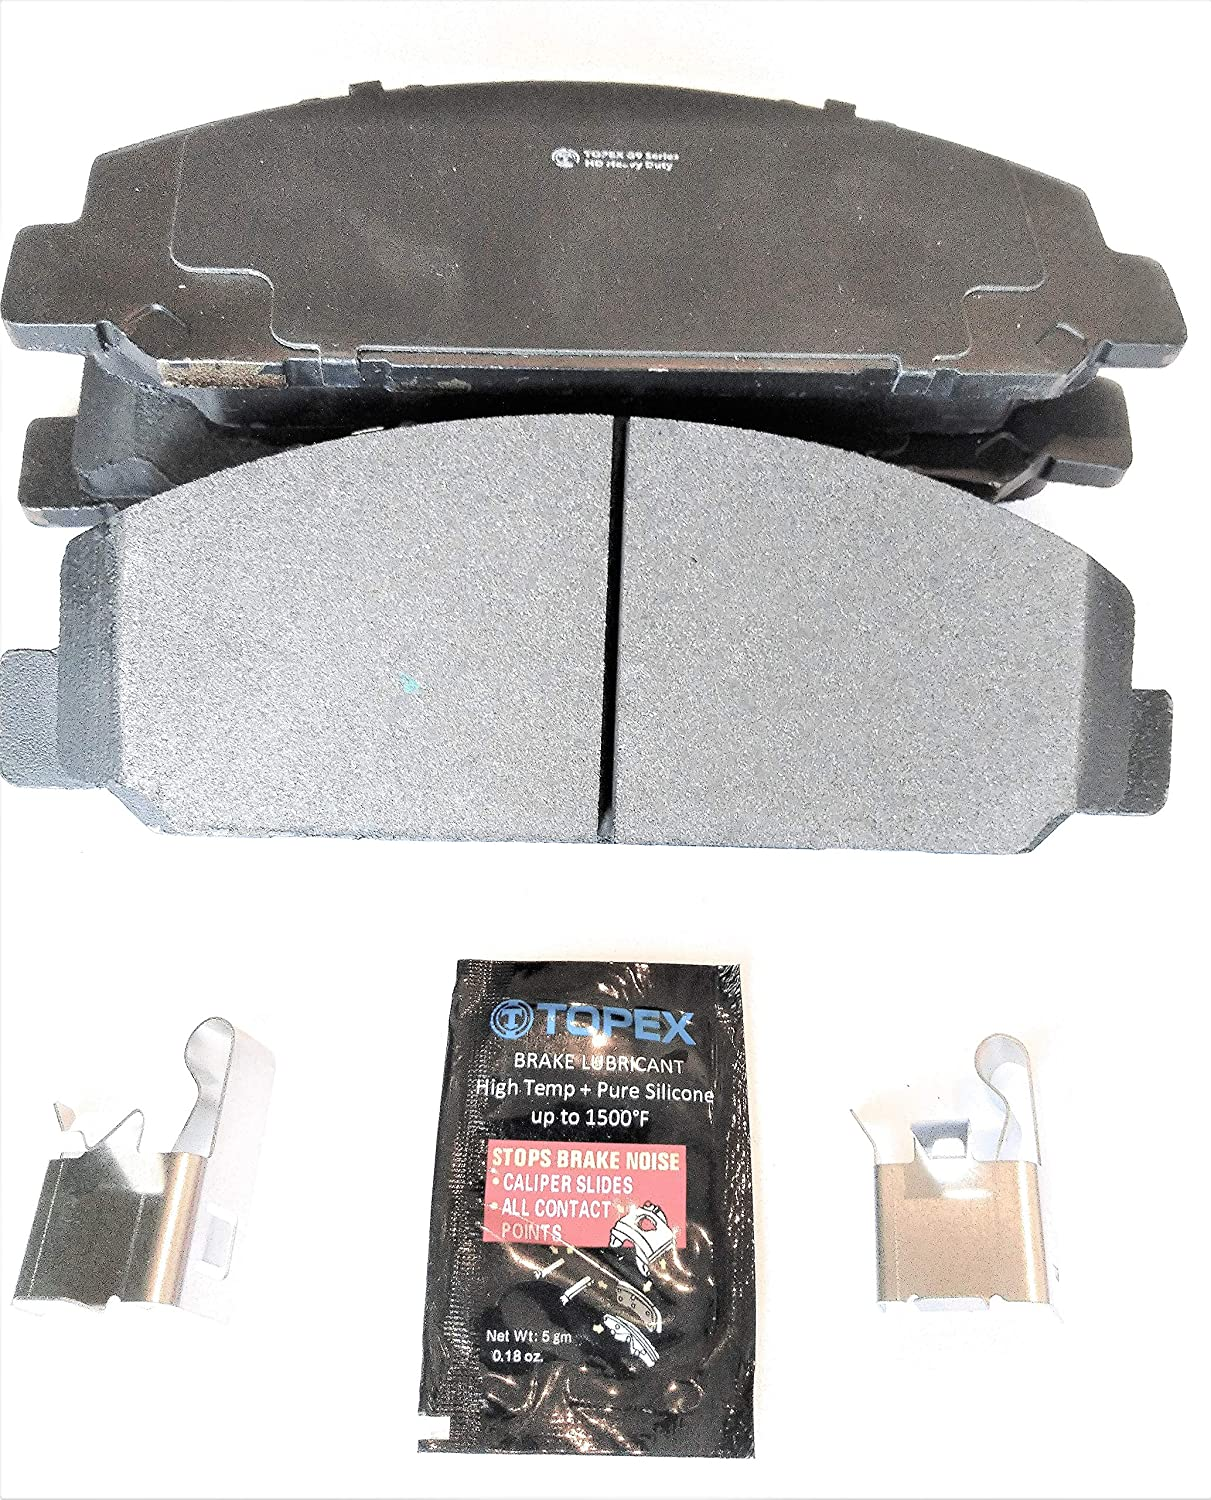 Metro Friction G9-0786 Topex Extreme G9 Series Heavy Duty Performance Formula Disc Brake Pad Set With Hardware